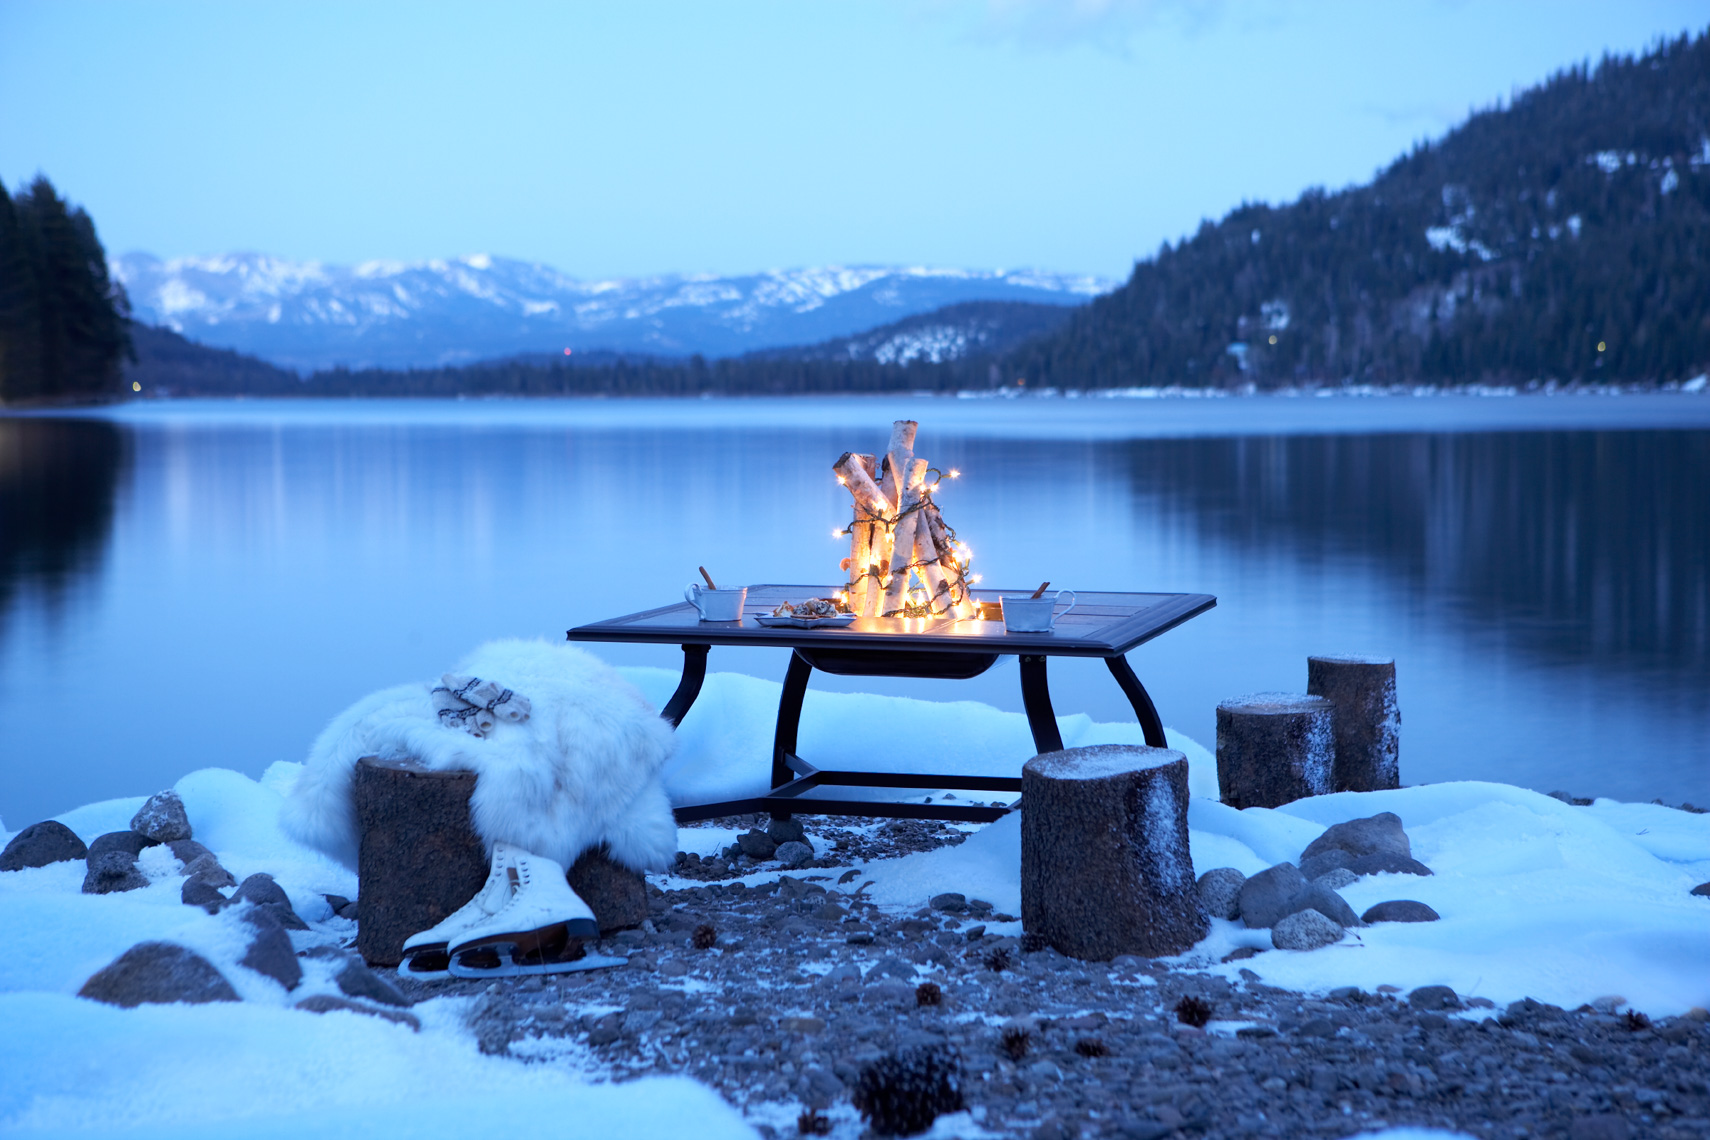 fire bowl with logs and holiday lights in snow on the shore of a mountain lake at dusk with ice skates San Francisco architectural photographer